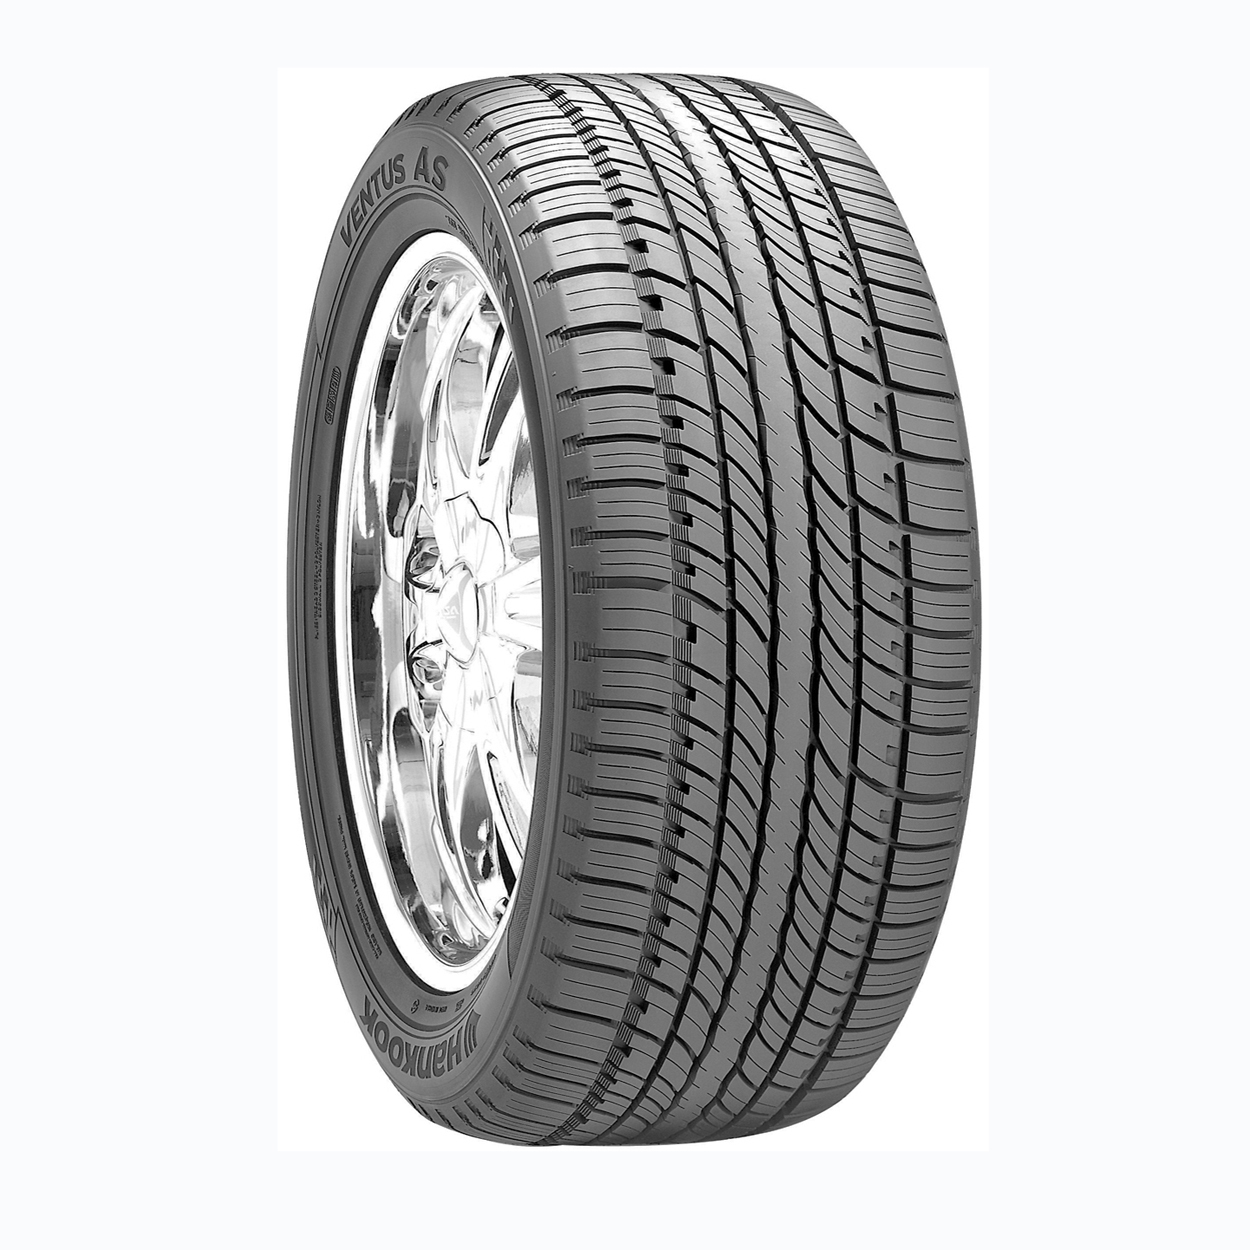 Hankook Ventus AS RH07 Tires